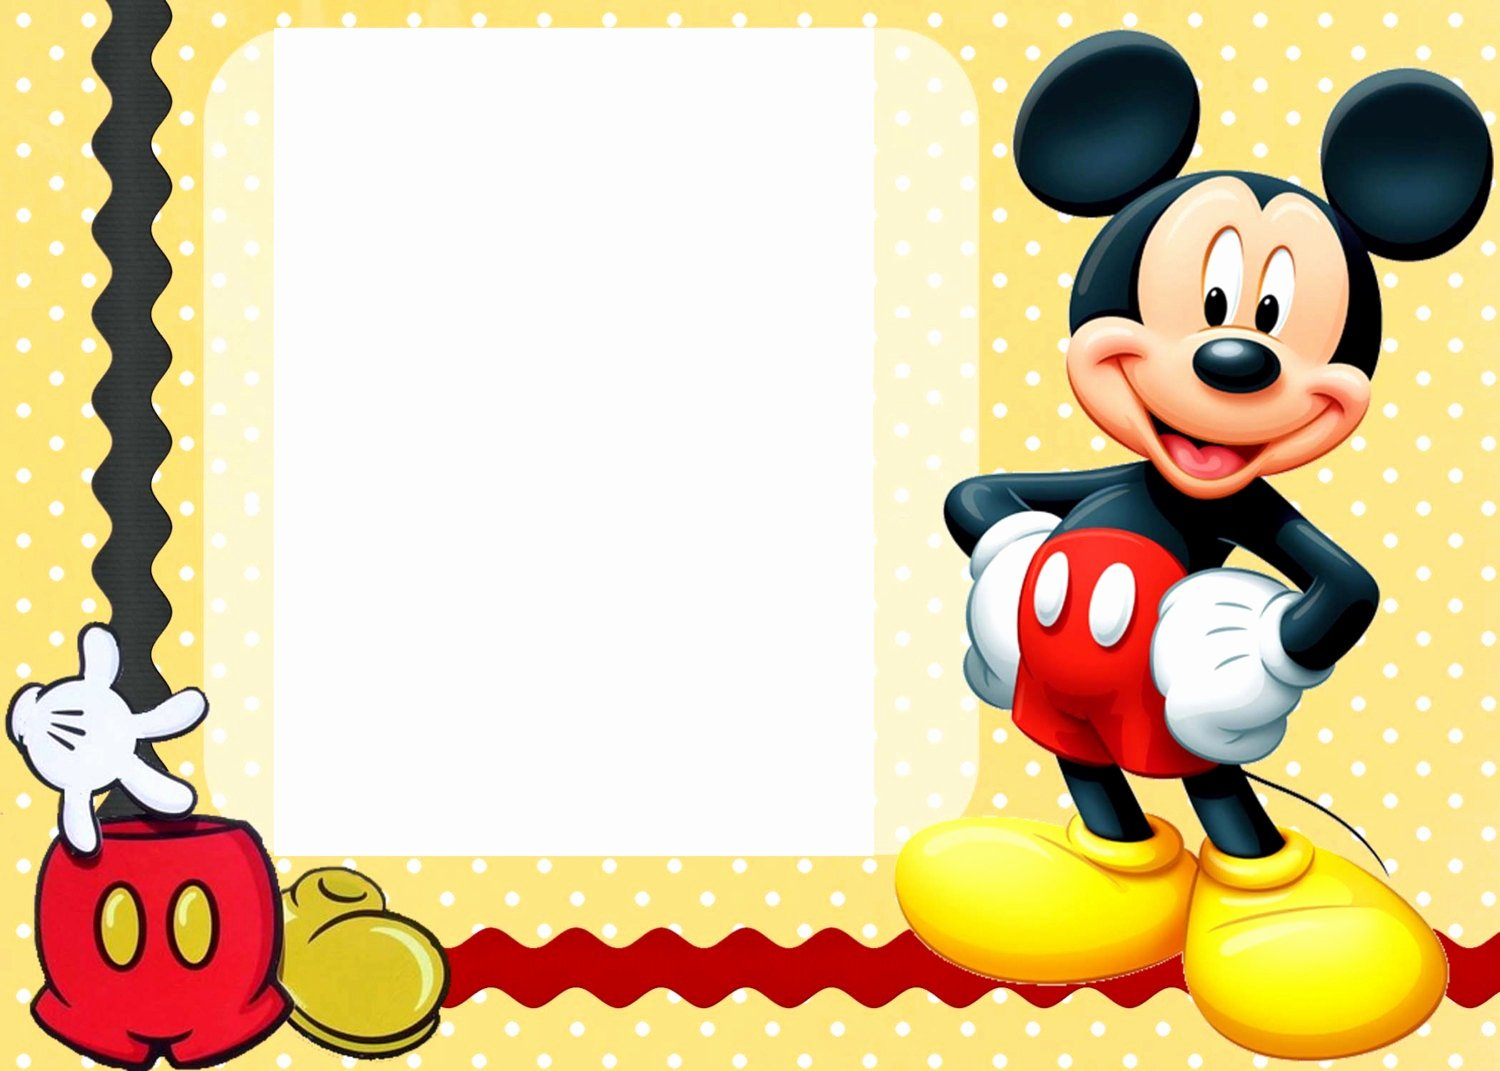 Mickey Mouse Invitations Template Luxury Free Printable Mickey Mouse Birthday Cards